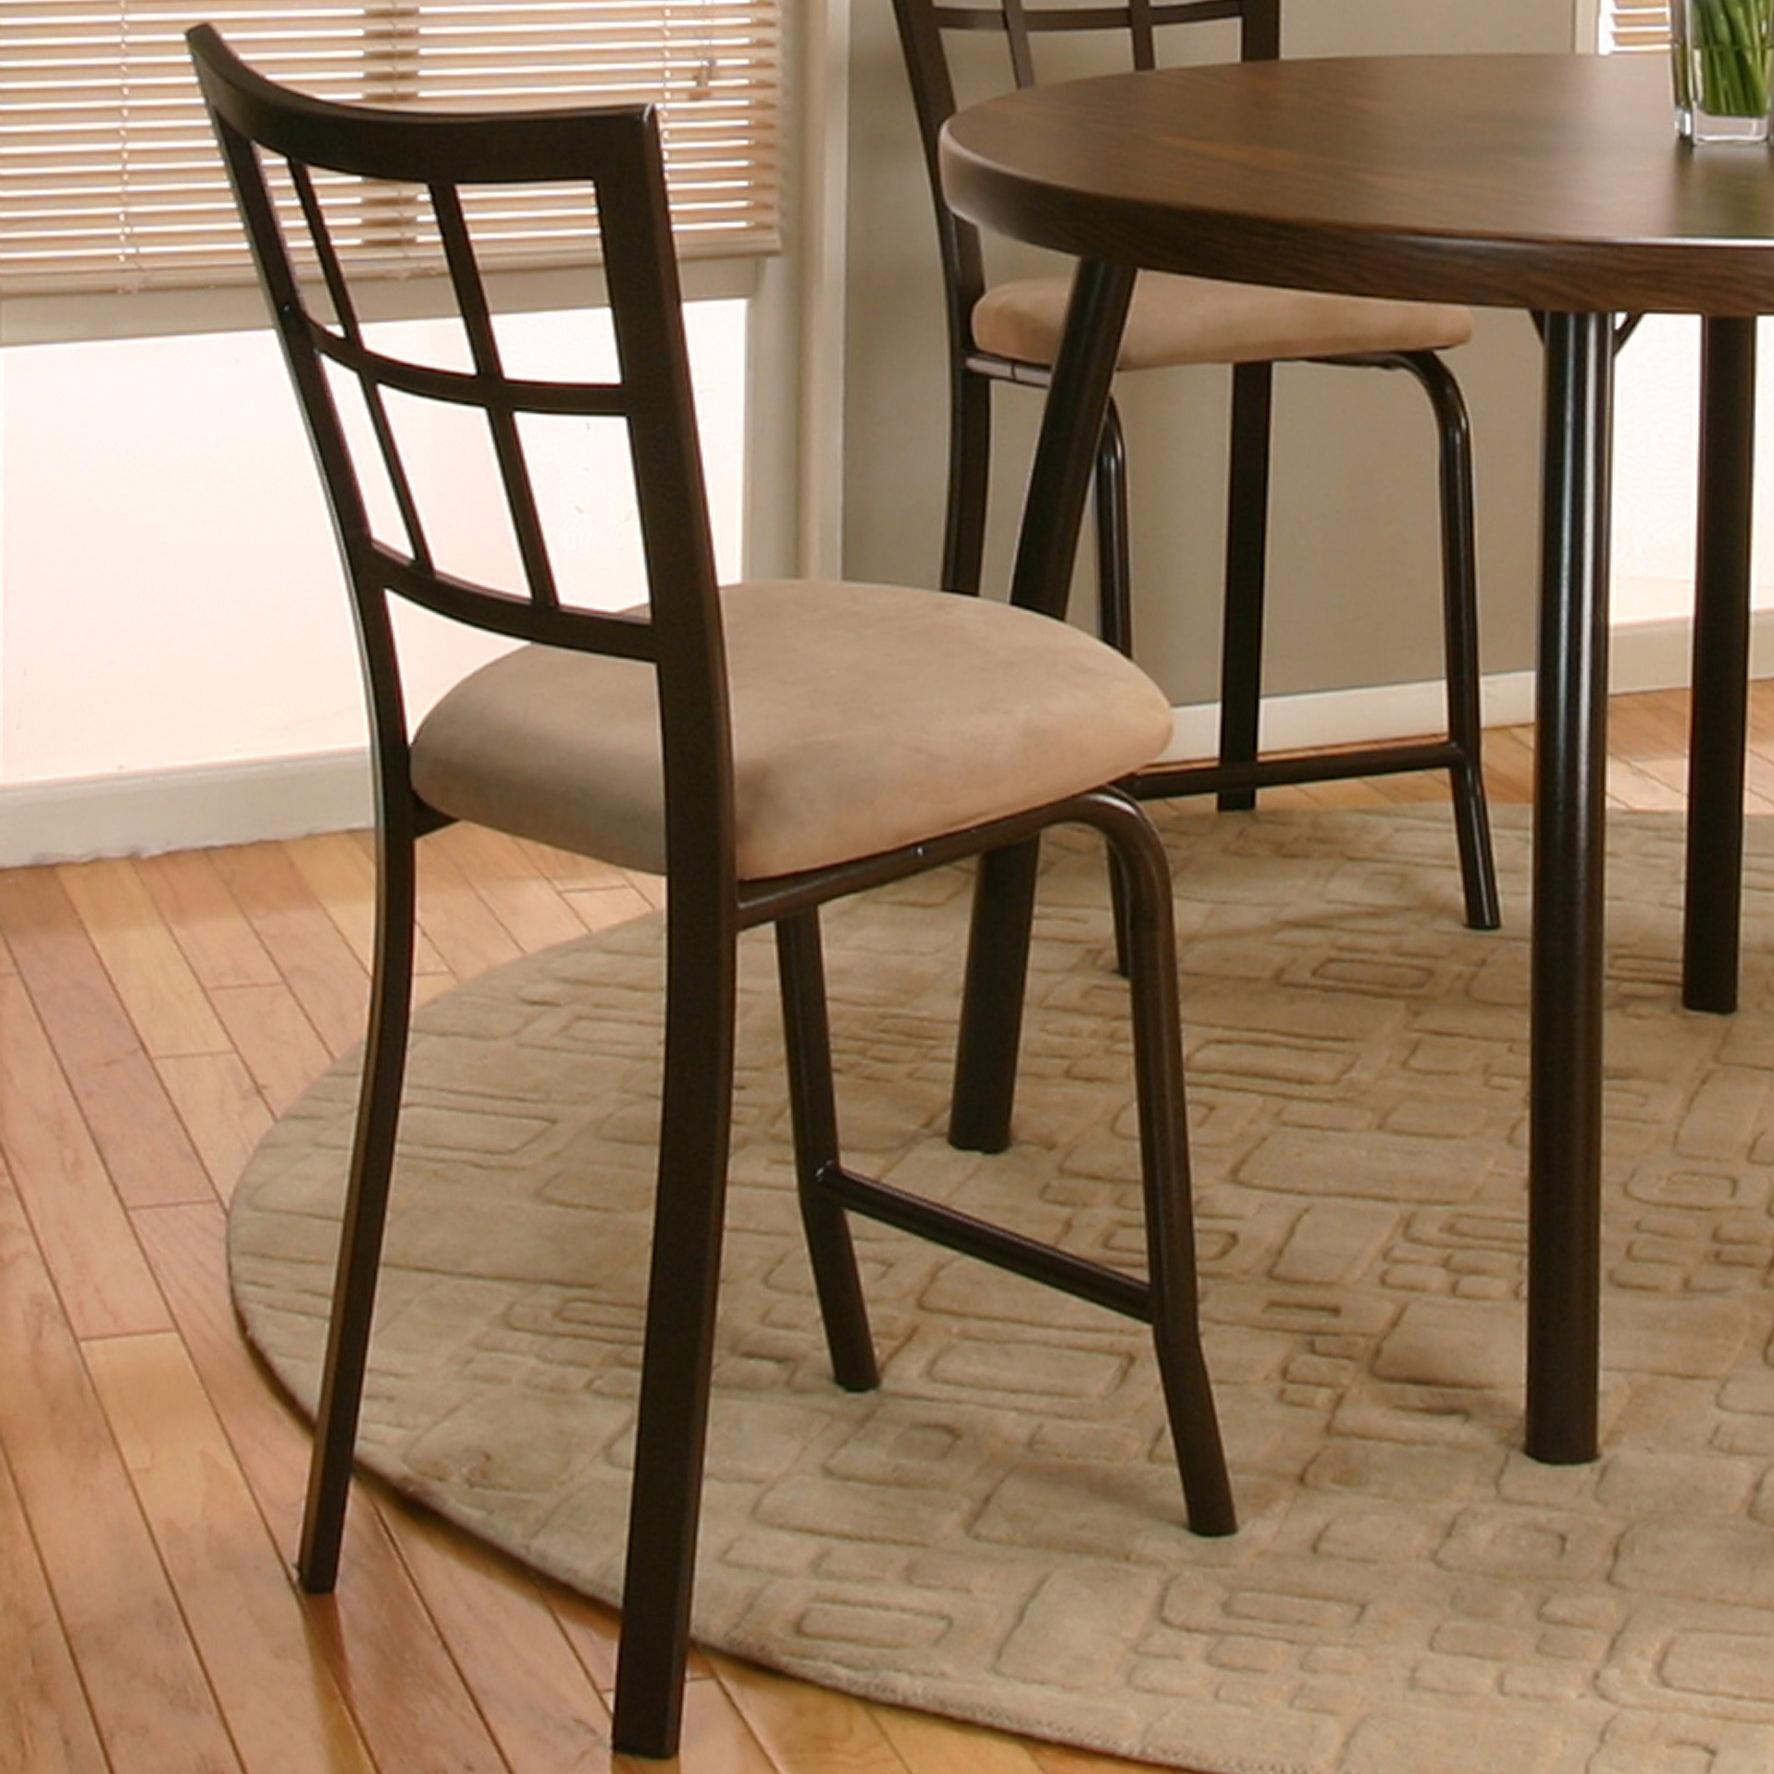 Cramco Inc Cramco Dinettes Vision 24quot Counter Stool w  : products2Fcramco2Cinc2Fcolor2Fvision20d8775d8775 24 b from www.valuecitynj.com size 1774 x 1774 jpeg 243kB